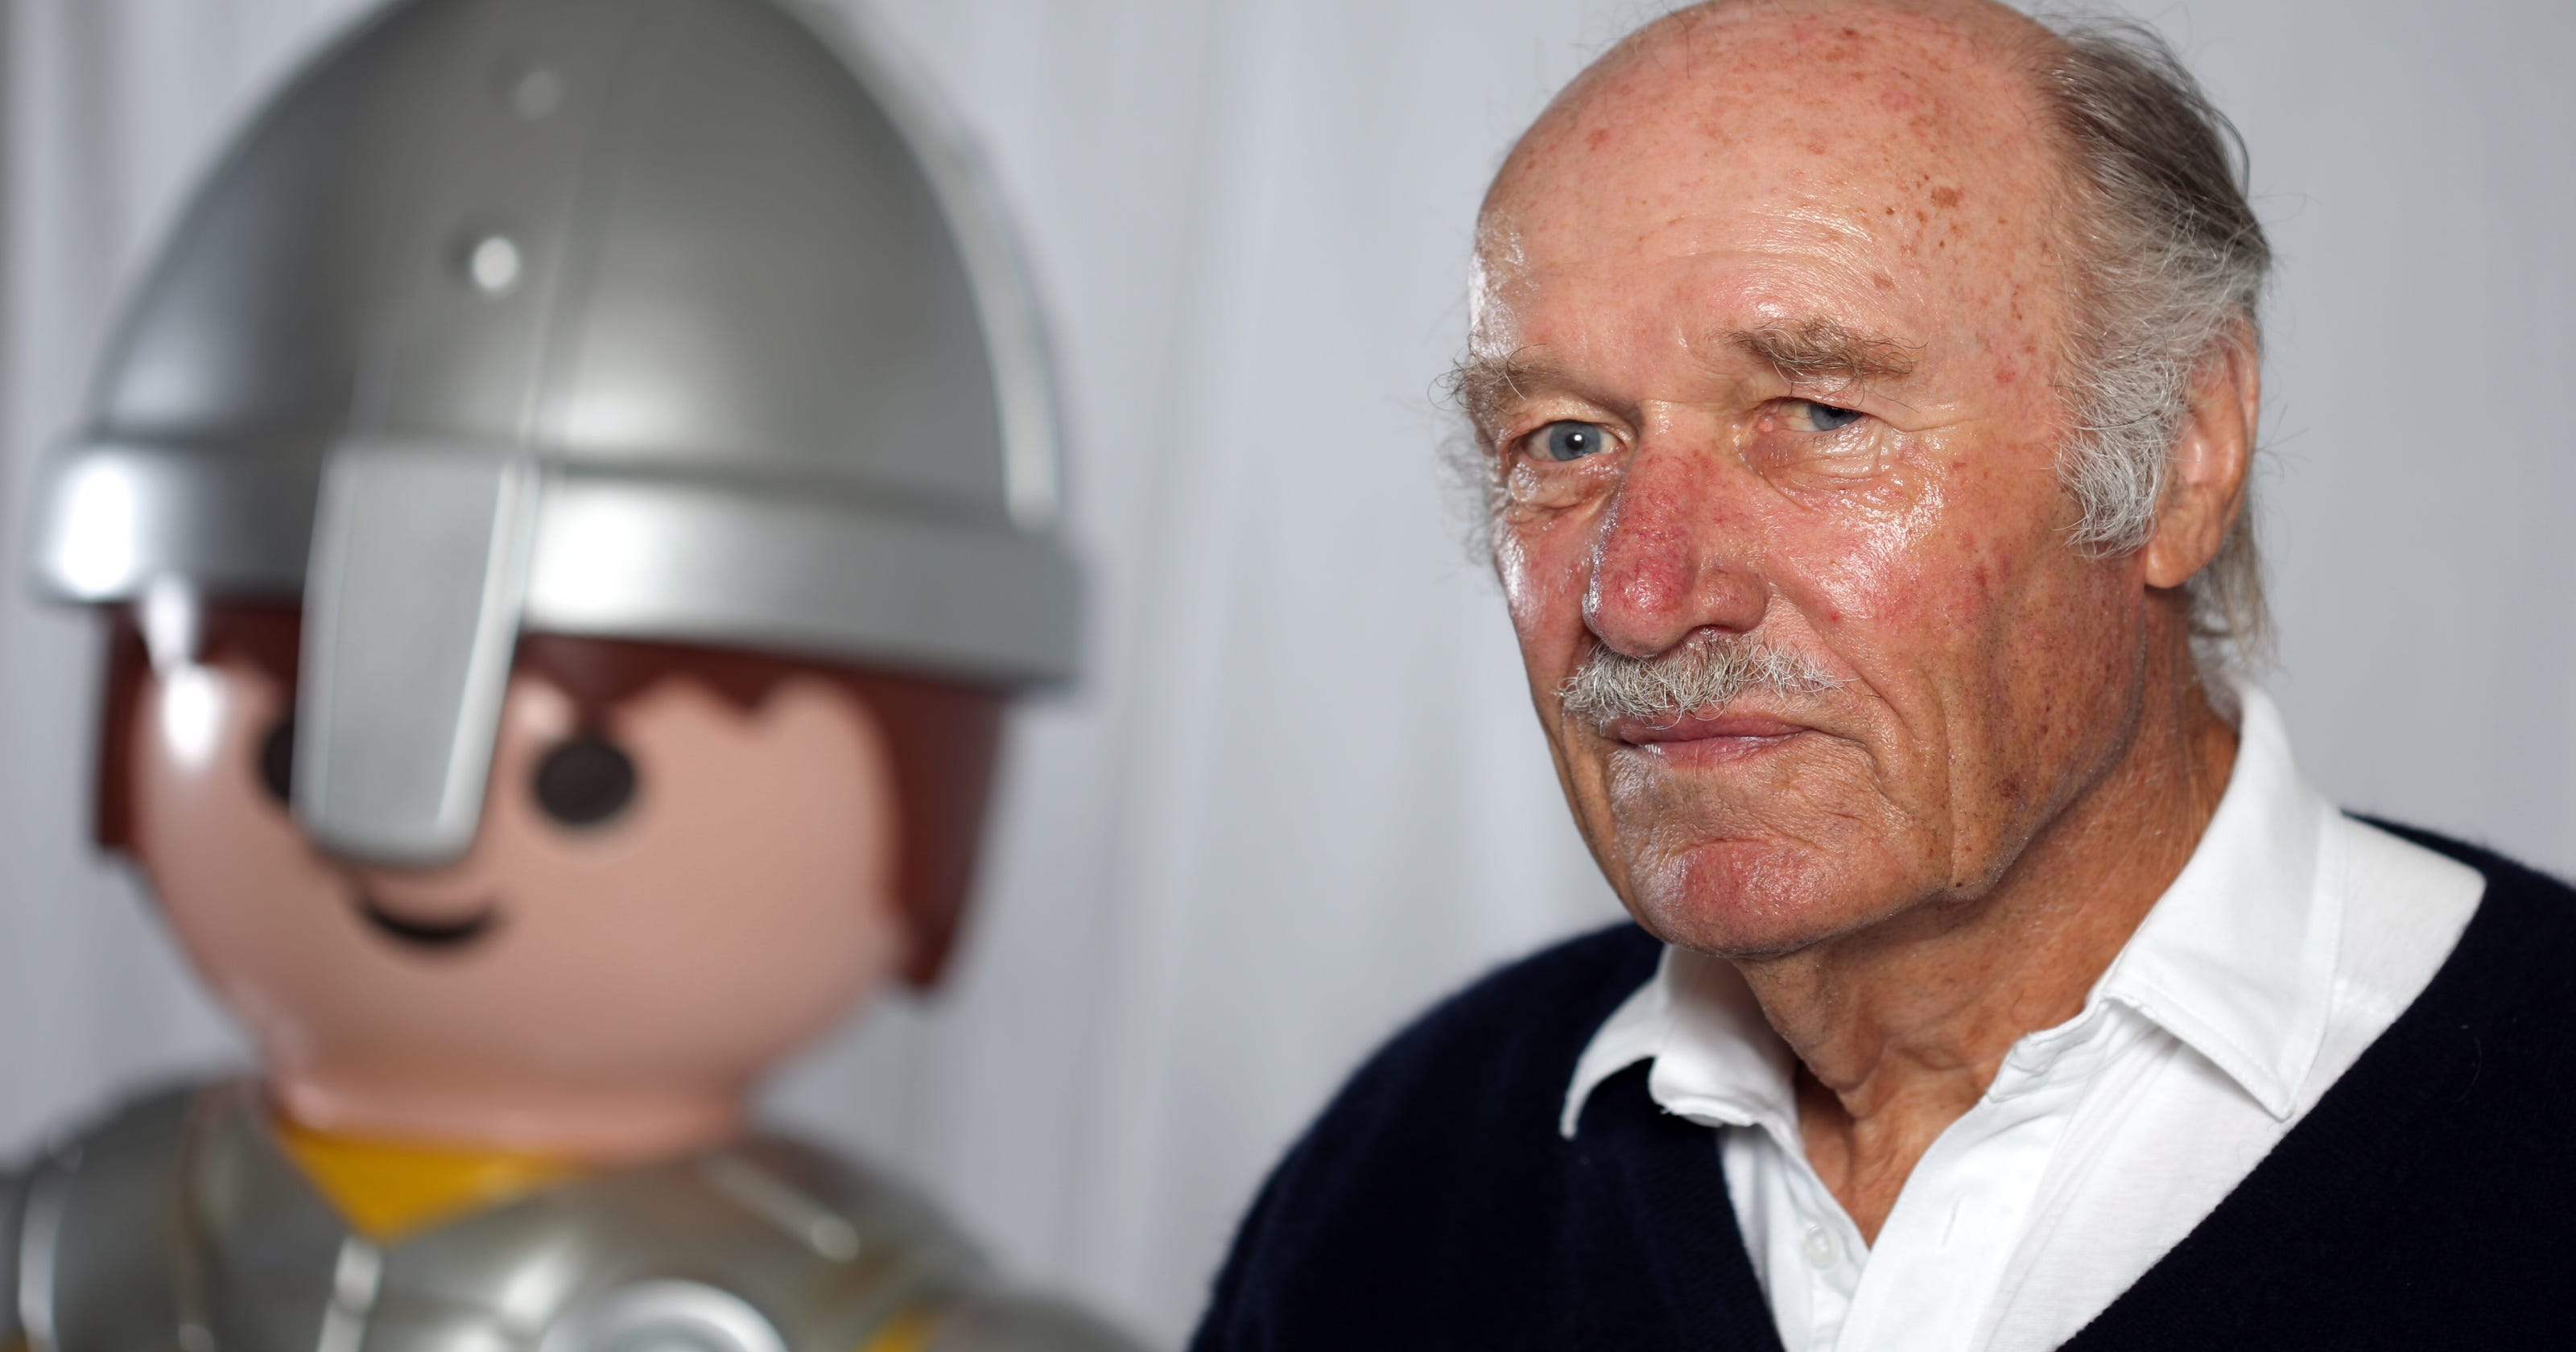 new product f99d8 1df5a Horst Brandstaetter who launched Playmobil toy range dies at 81